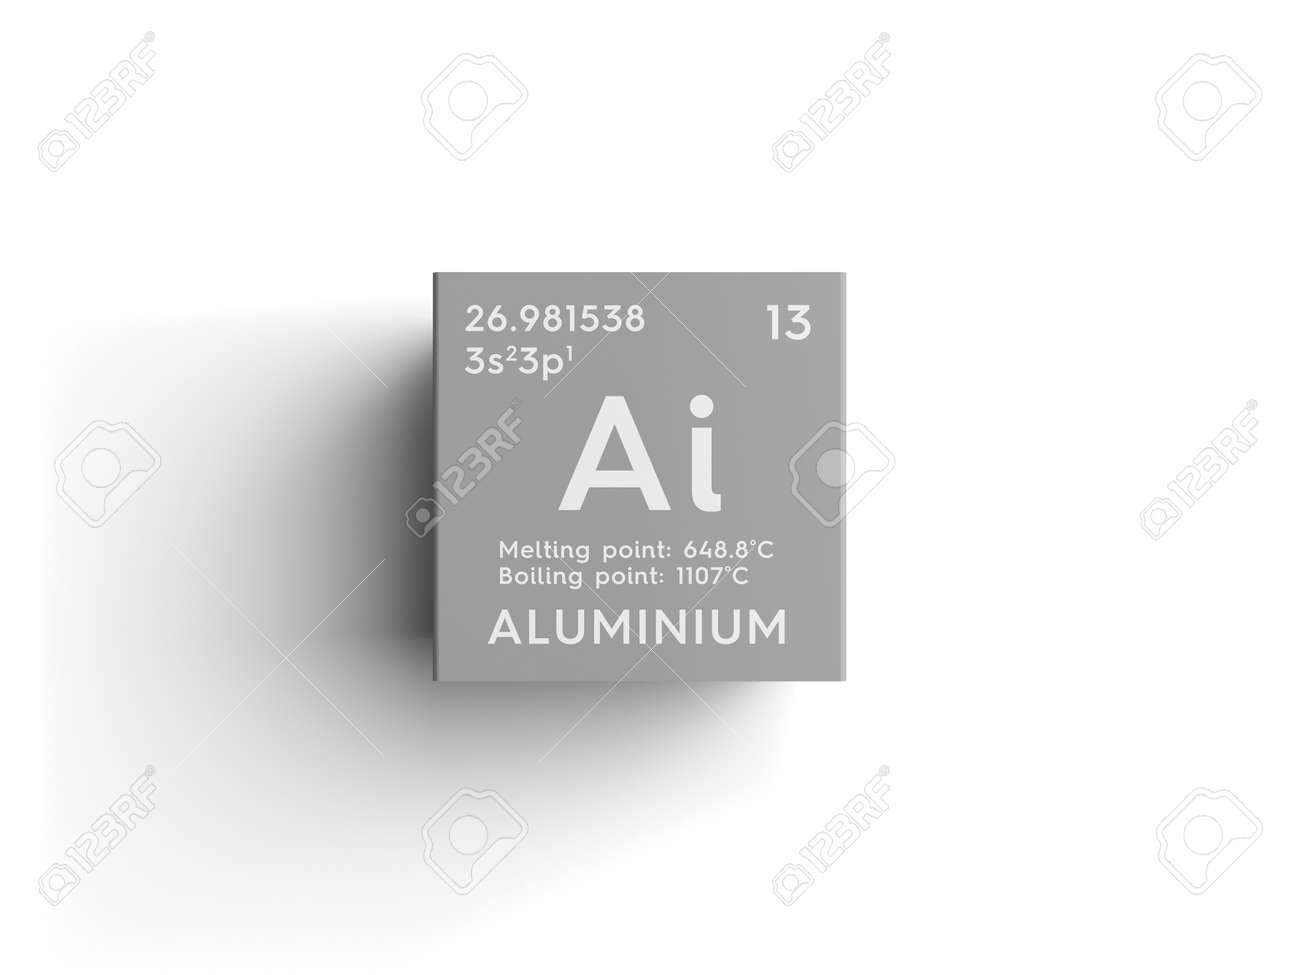 Aluminum post transition metals chemical element of mendeleevs aluminum post transition metals chemical element of mendeleevs periodic table aluminum in urtaz Gallery